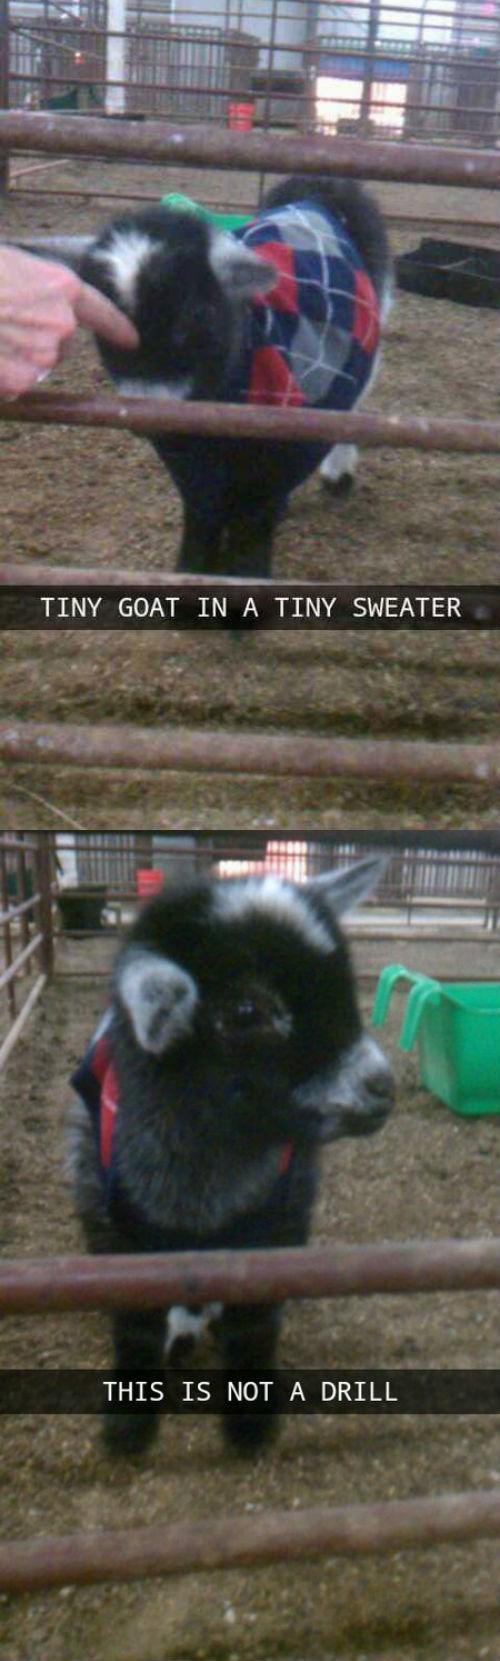 goat sweater animals g rated poorly dressed - 7939522304